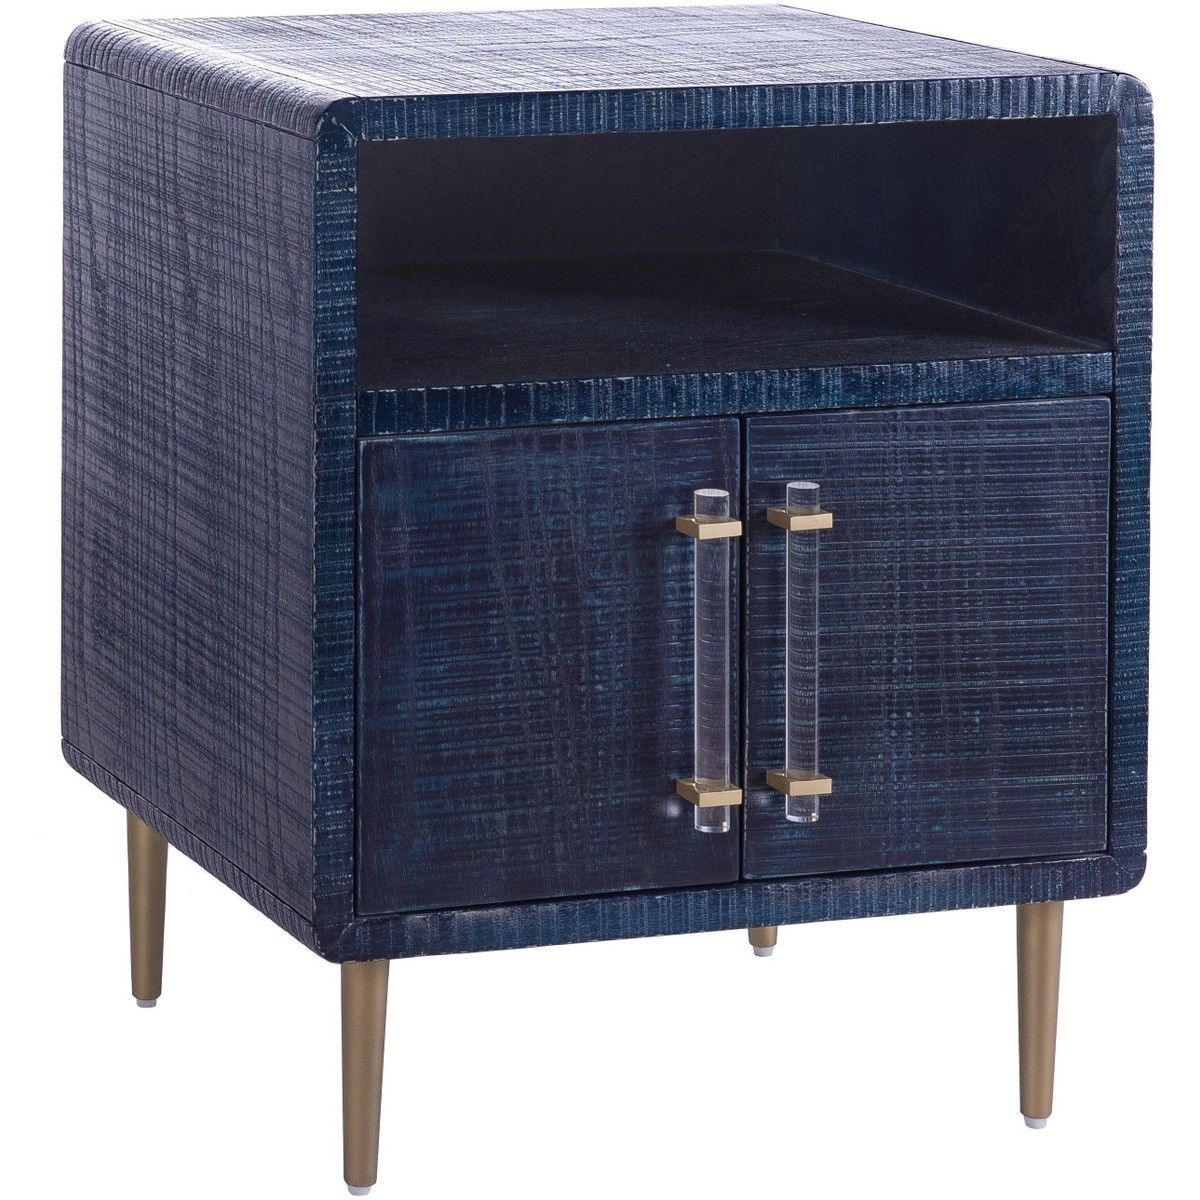 Candelabra Home Marco Lacquer Indigo Side Table Bedside Tables Nightstands Bedroom Furniture C End Tables With Storage Bedroom Night Stands Furniture